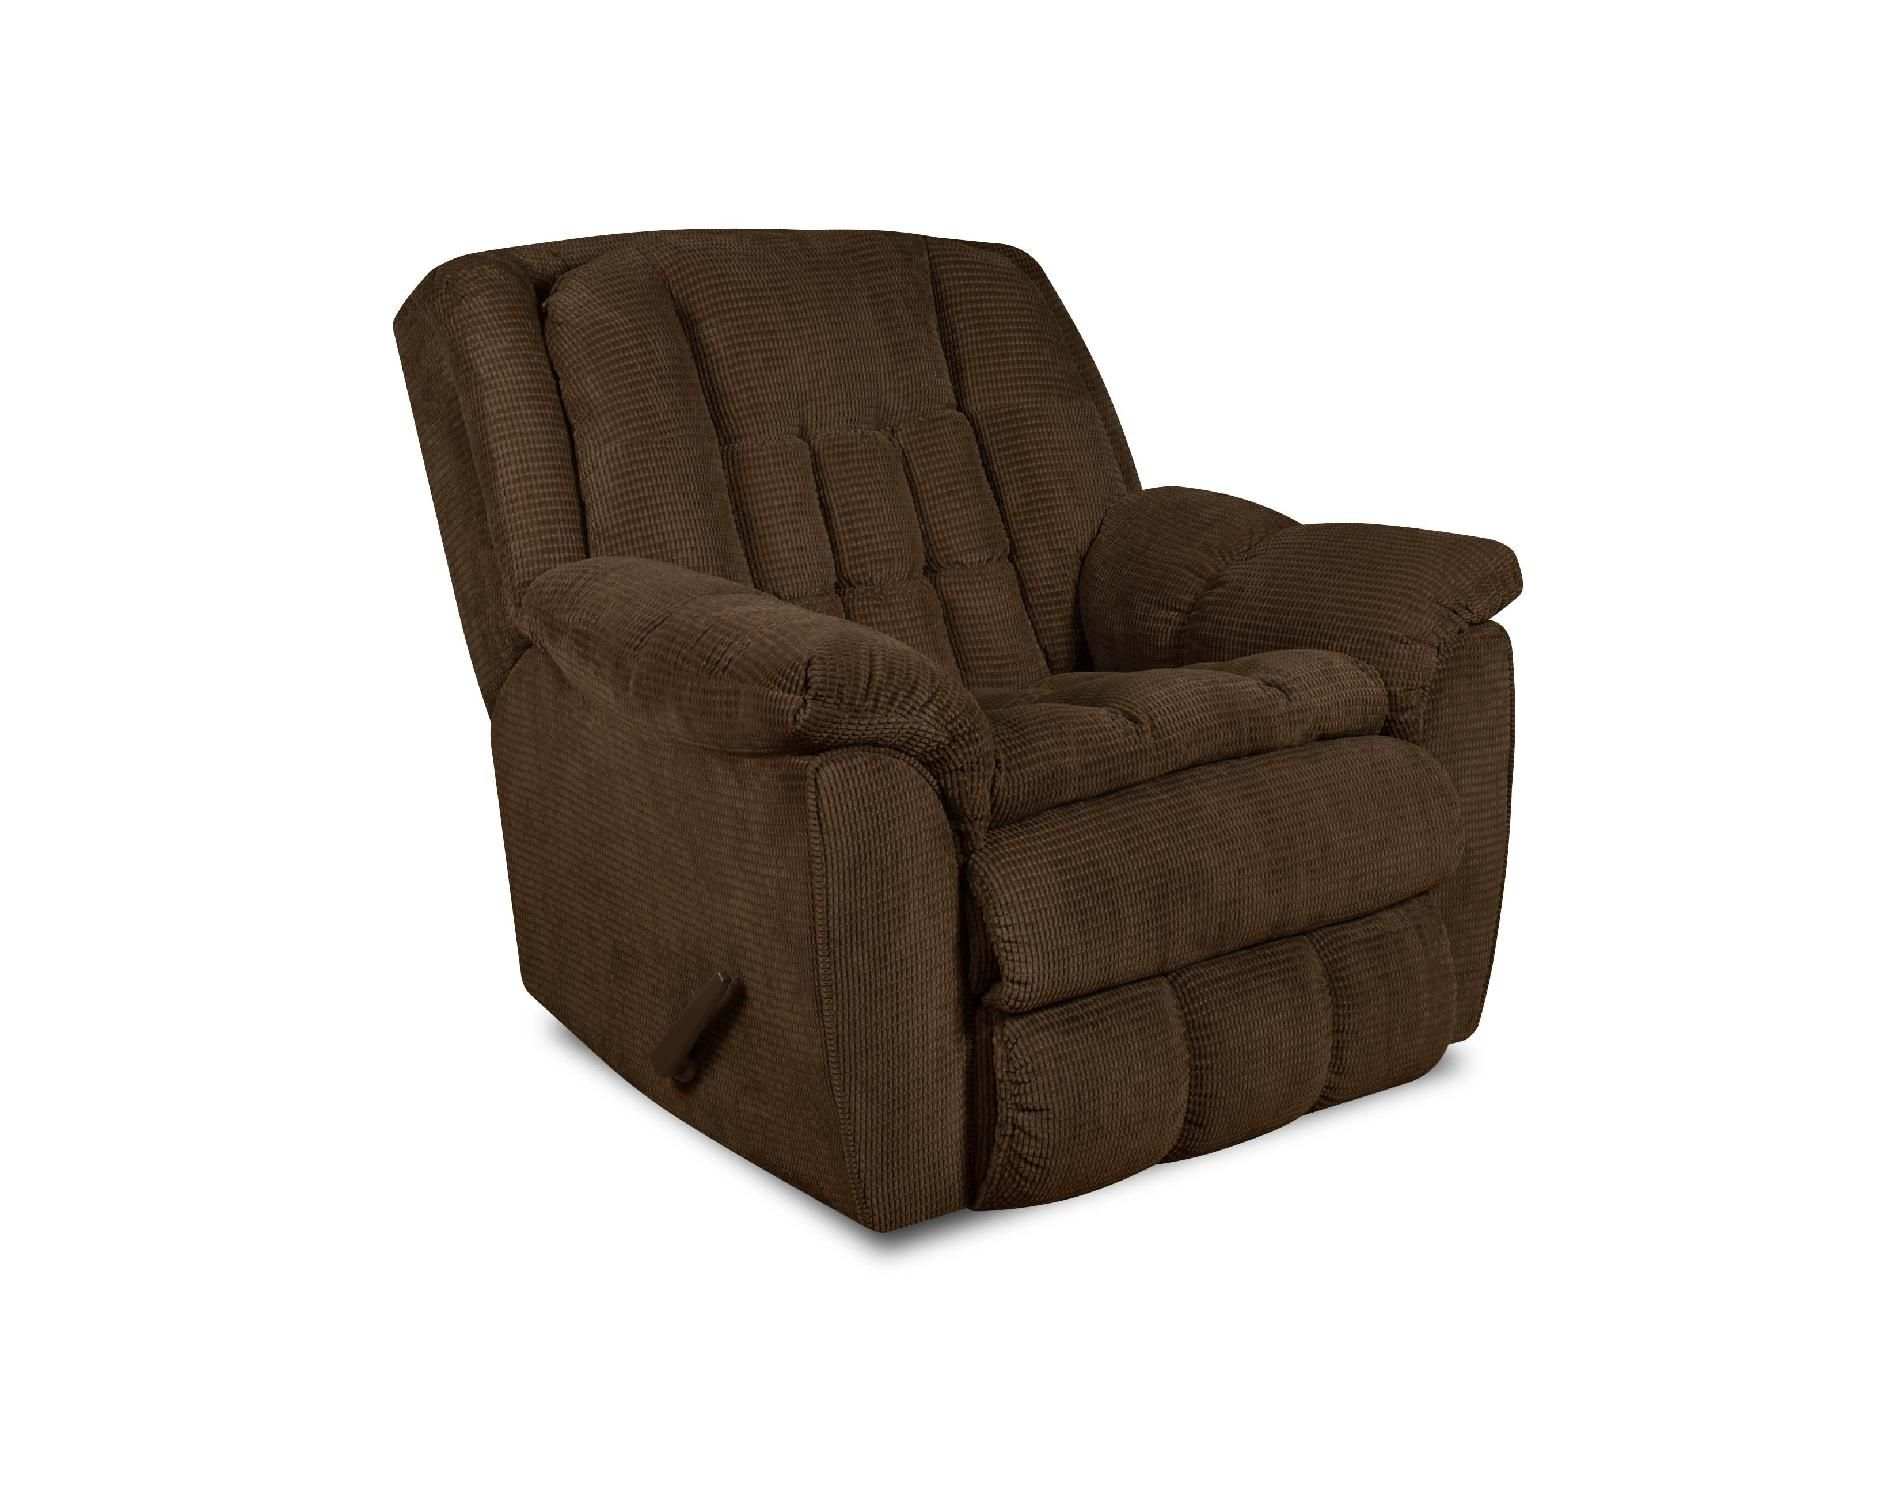 Simmons Upholstery Encore 3 Way Rocker Recliner